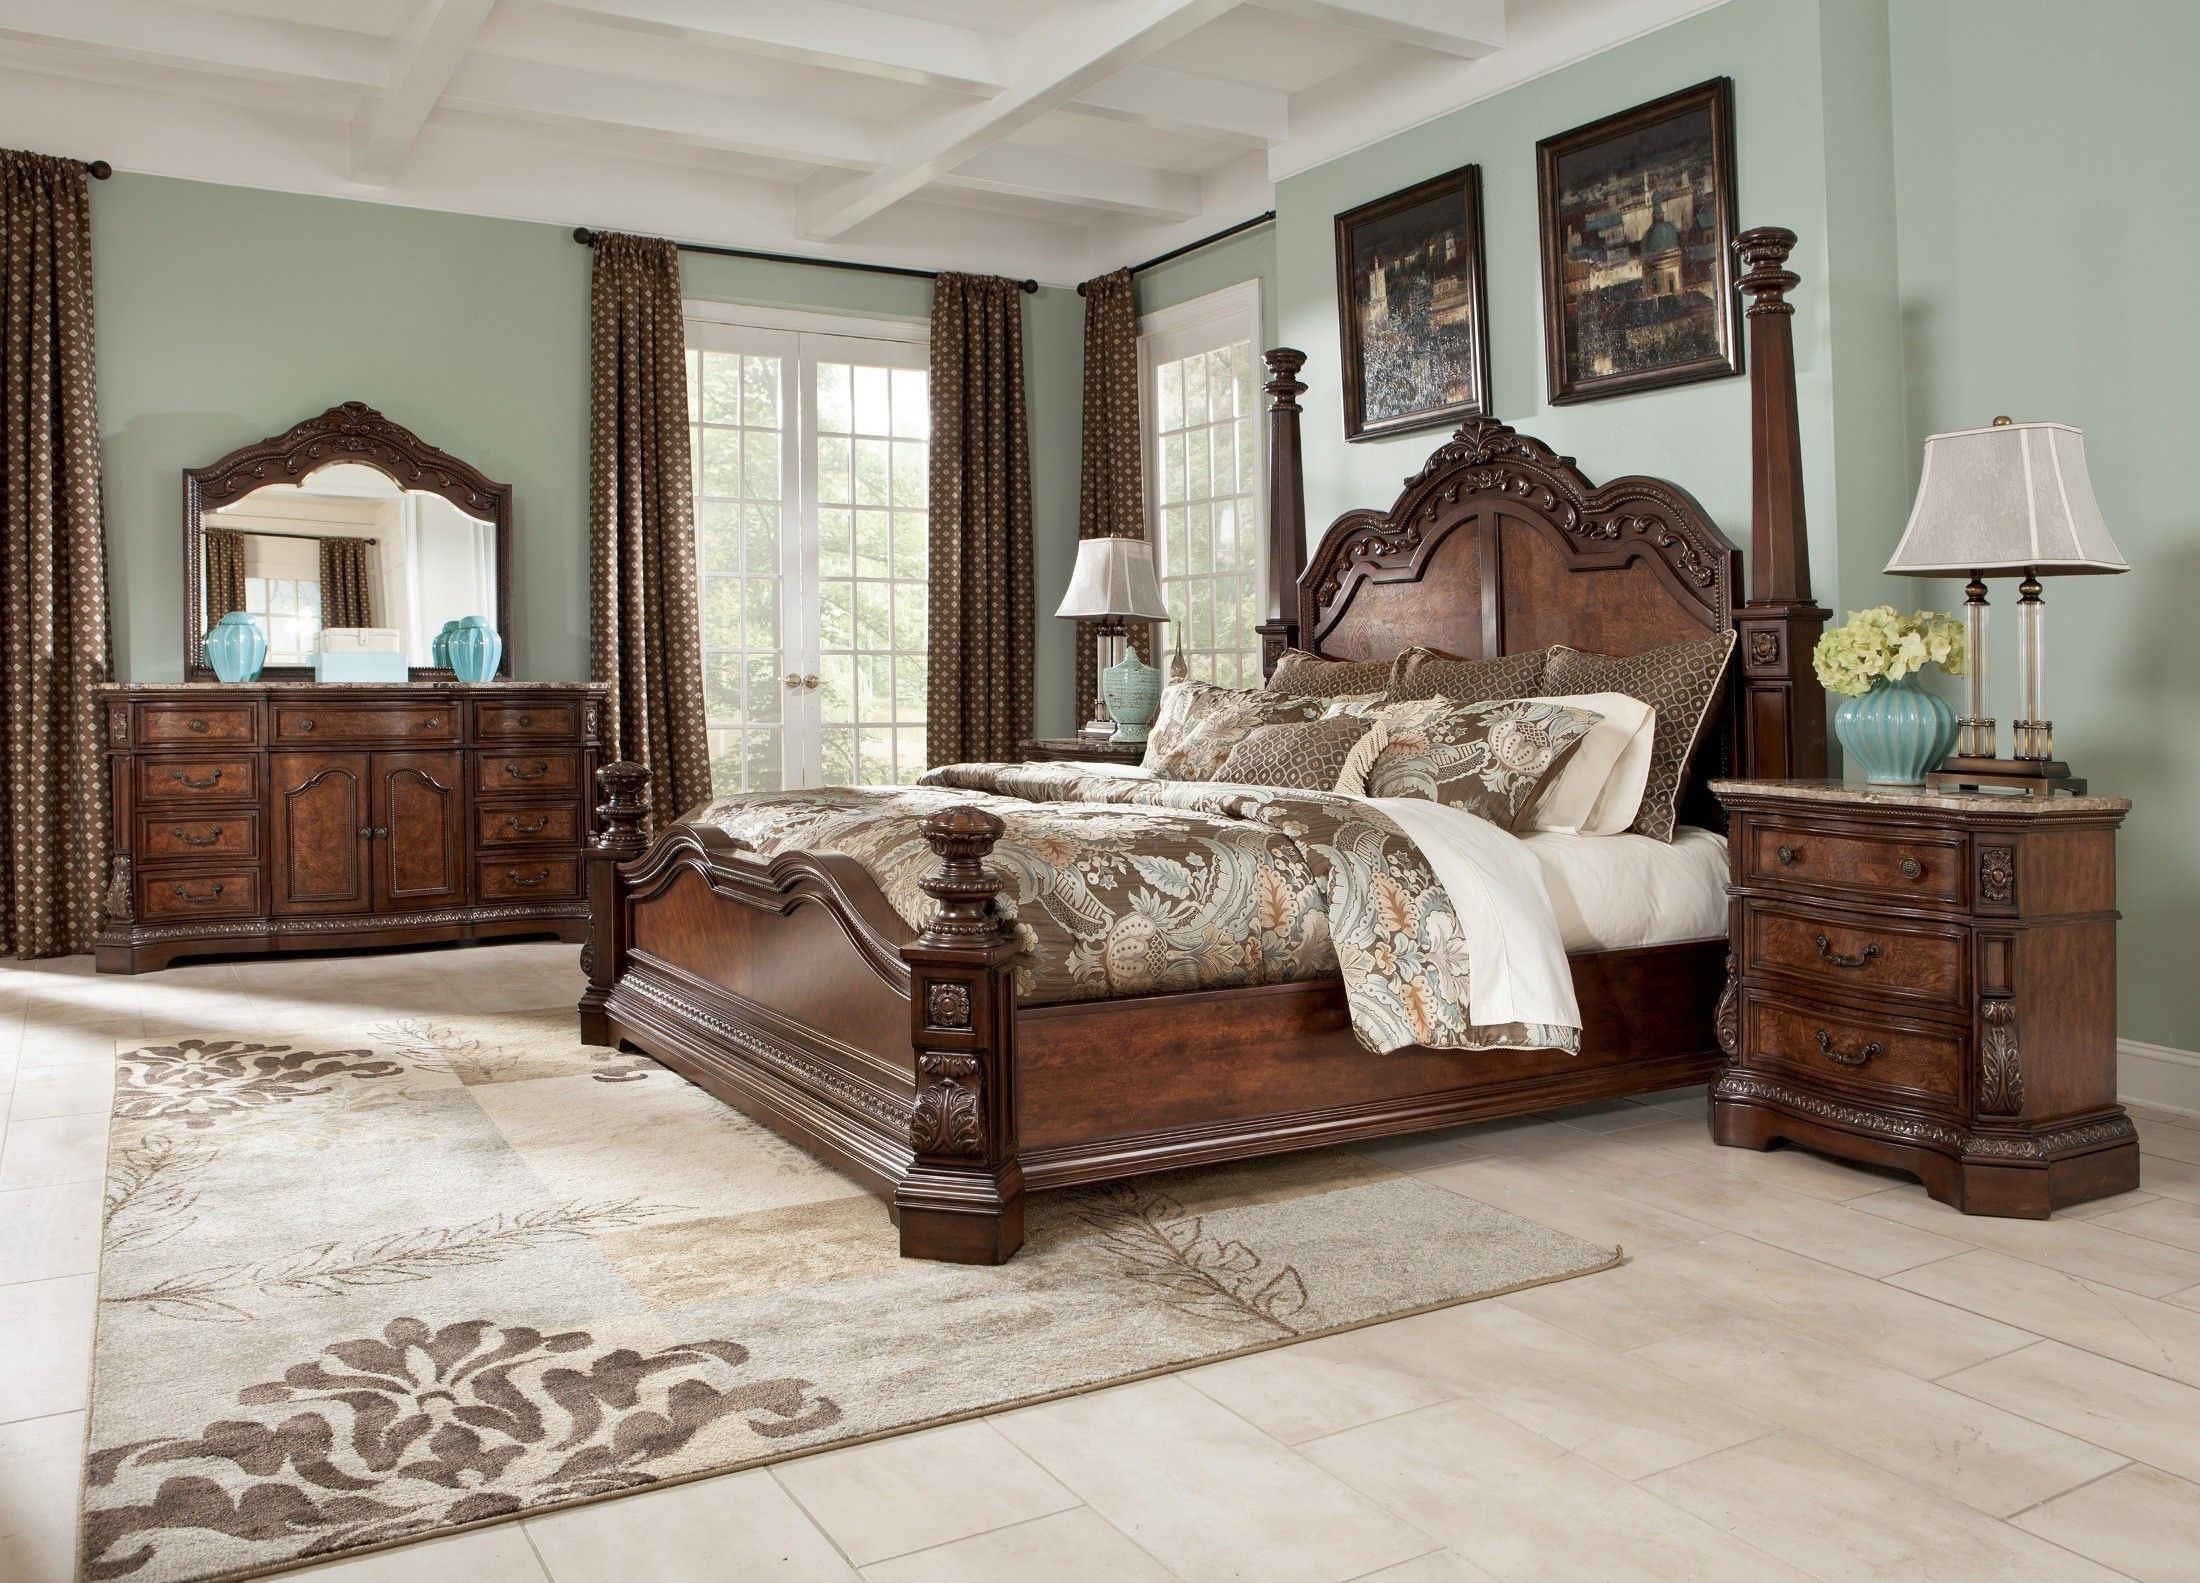 Ashley Millennium Bedroom Set ashley Furniture Cherry Wood 4 Poster Bed